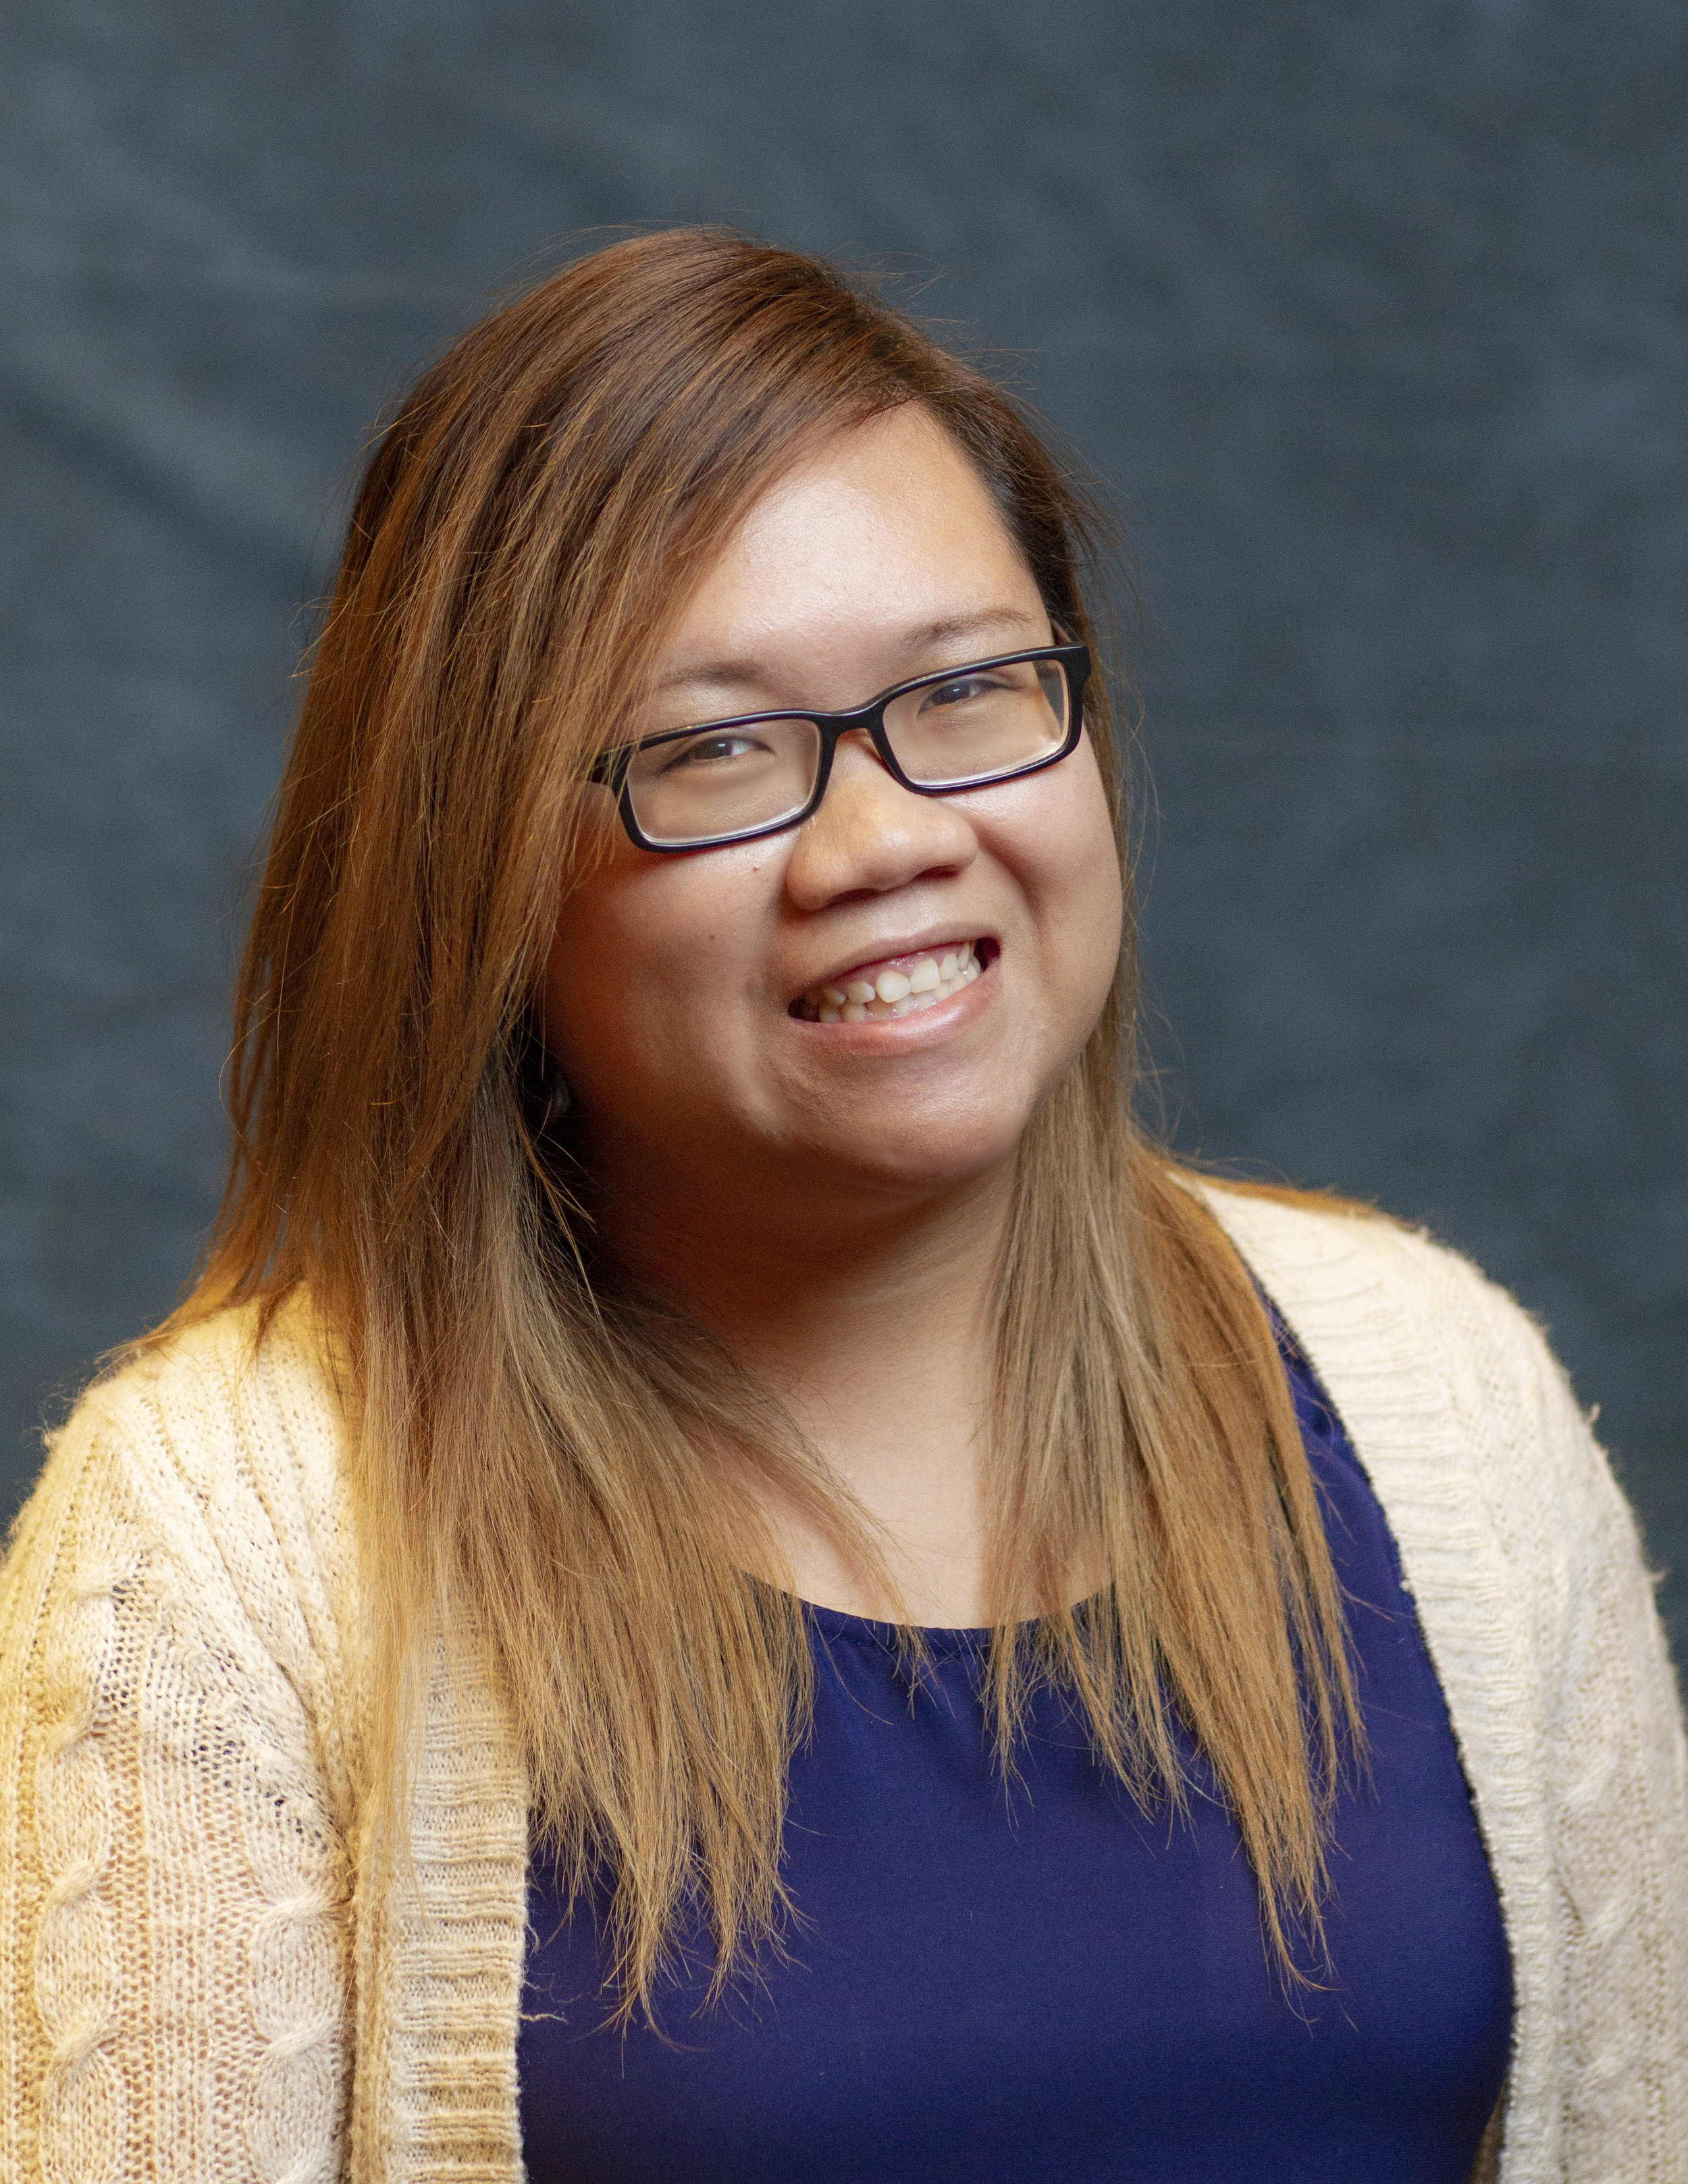 Janet Ly, MA, LMFT - EDUCATIONMaster's Degree:Palo Alto UniversityBachelor's Degree:Palo Alto UniversityLICENSURELicensed Marriage & Family Therapist PROFESSIONAL MEMBERSHIPSCAMFTCLINICSan Jose